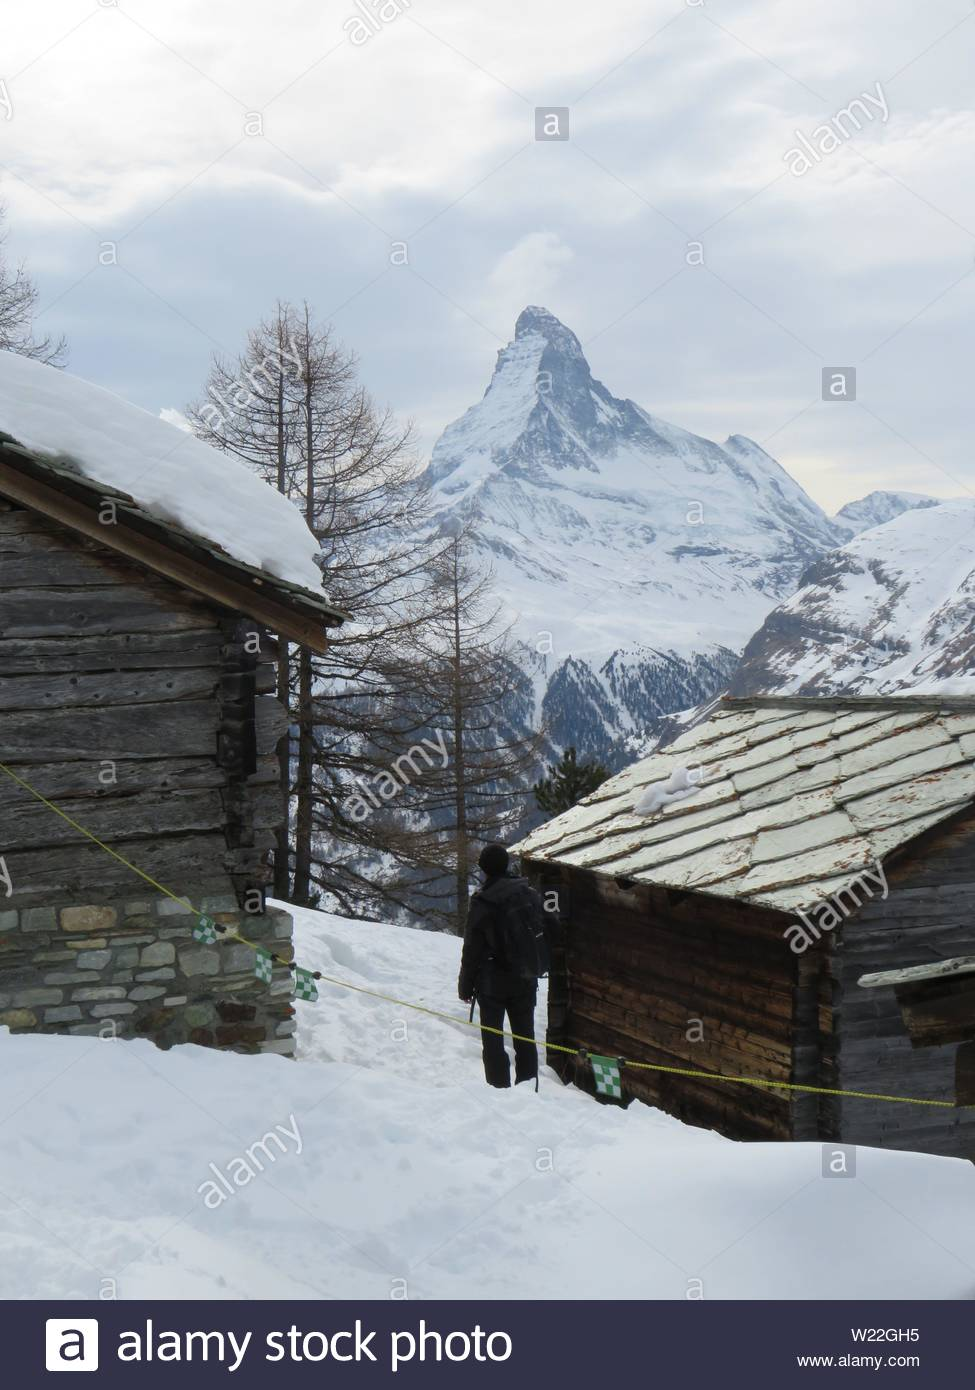 Two cabins in a snow covered mountain. - Stock Image